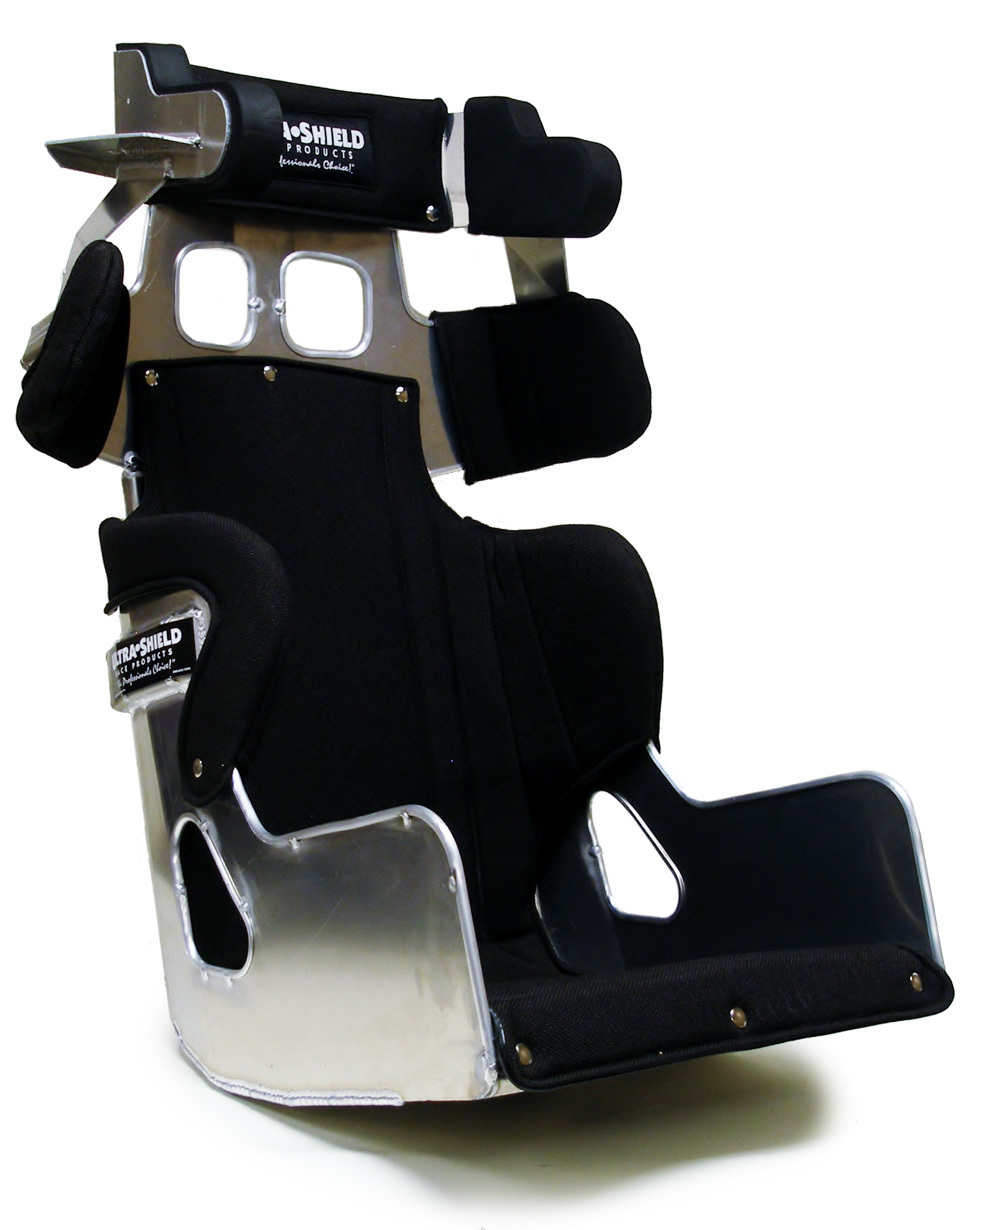 Ultra Shield FCLM620 Seat, FC1 Late Model, 16 in Wide, 20 Degree Layback, Black Cover Included, Aluminum, Natural, Each